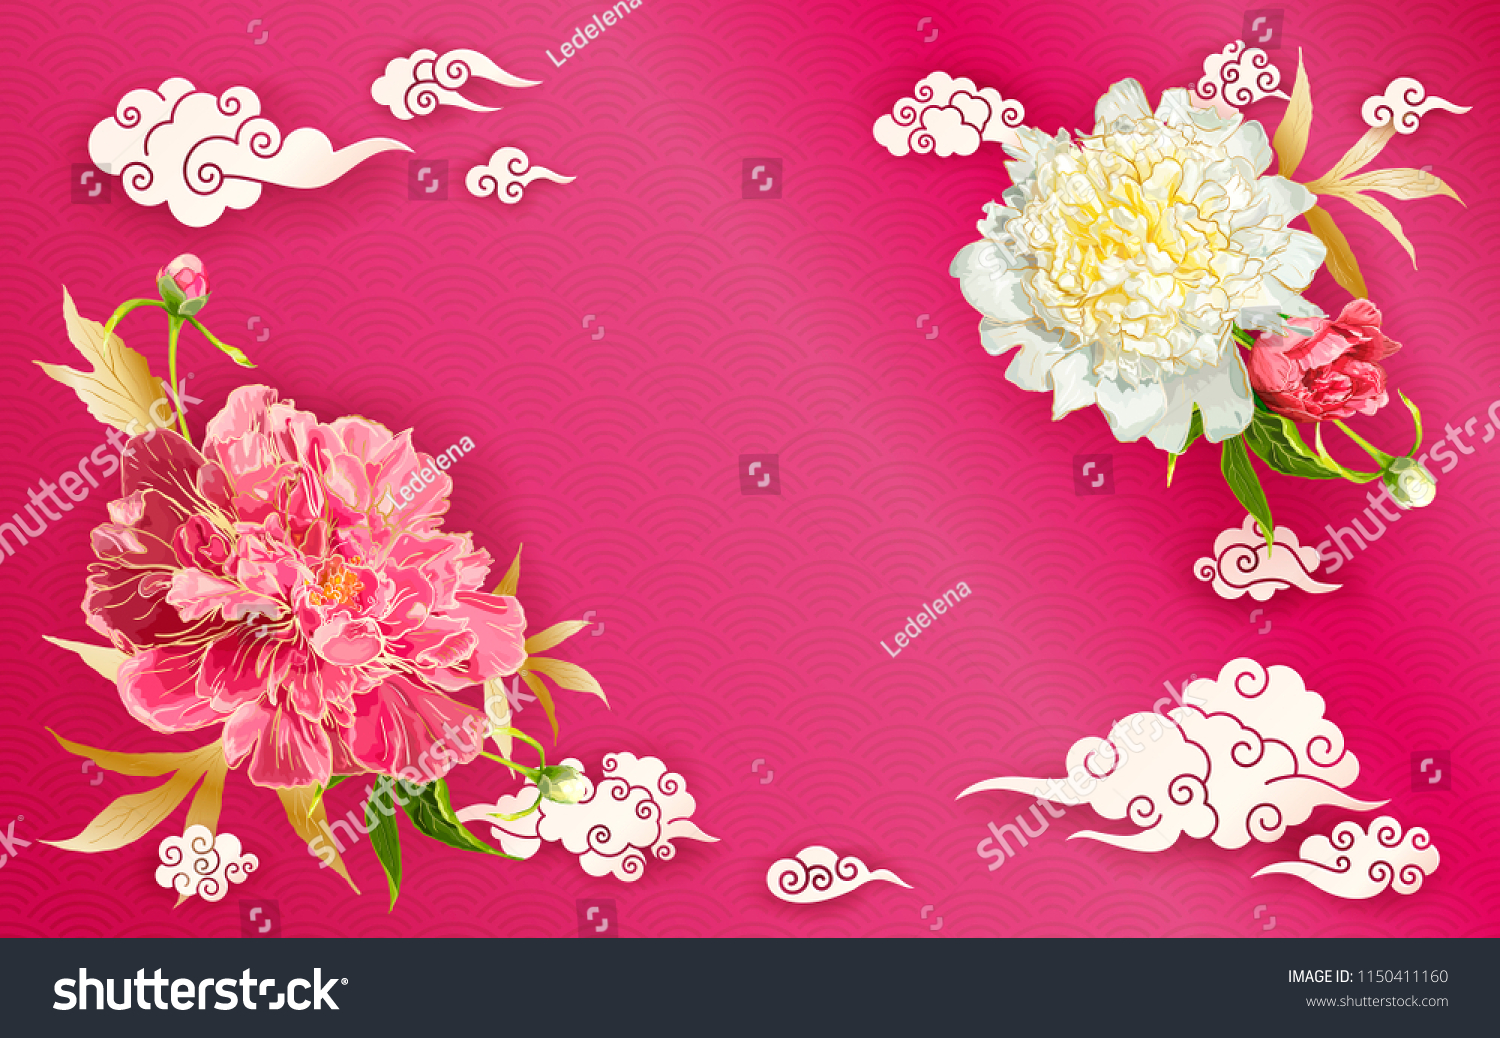 Oriental Background With Red And Pink Peonies Flowers Leaves Buds